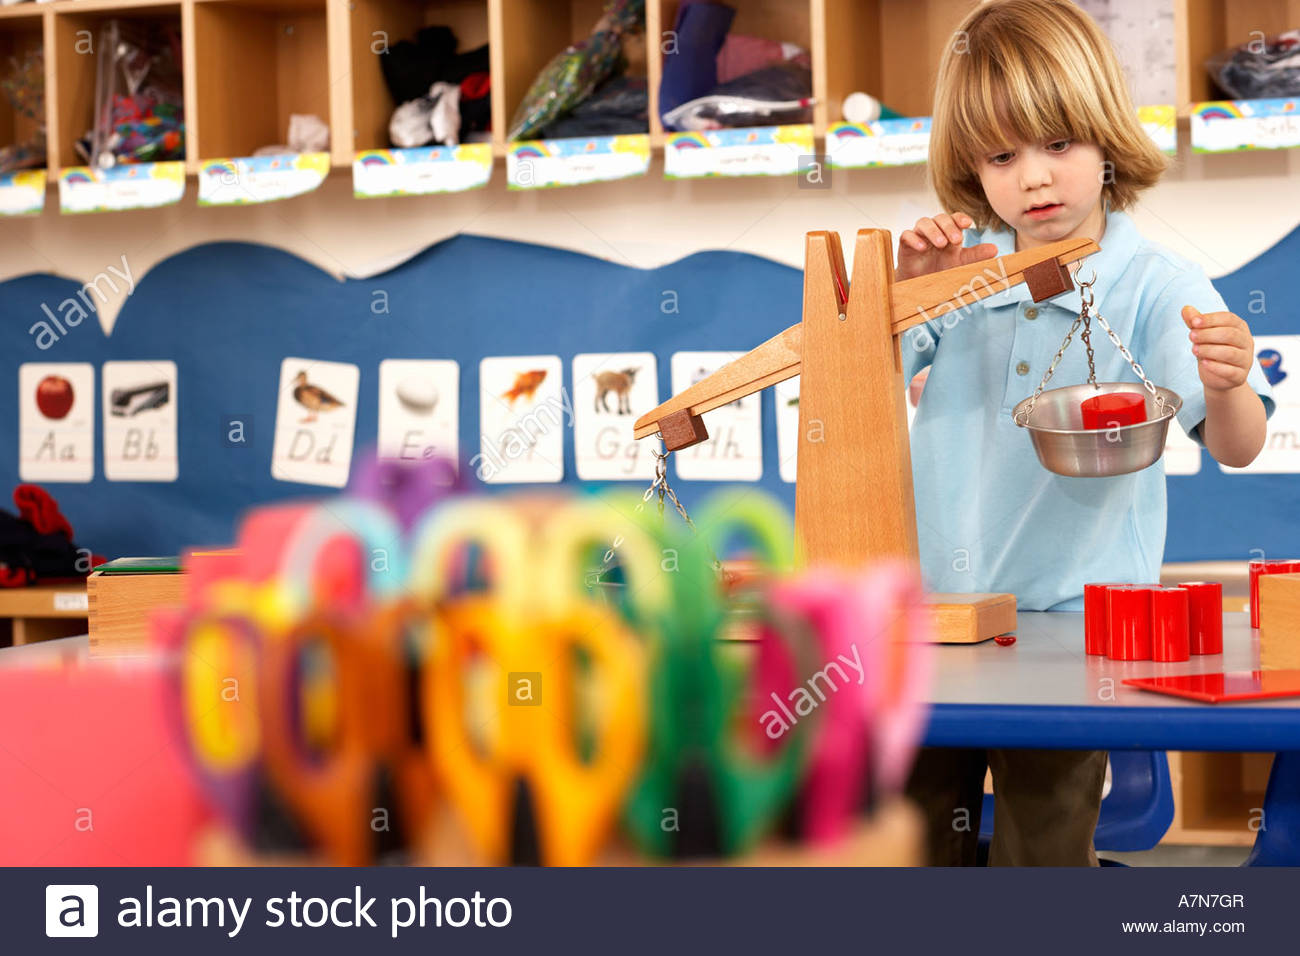 Multi coloured scissors in classroom focus on boy 4 6 playing with weight scale in background - Stock Image